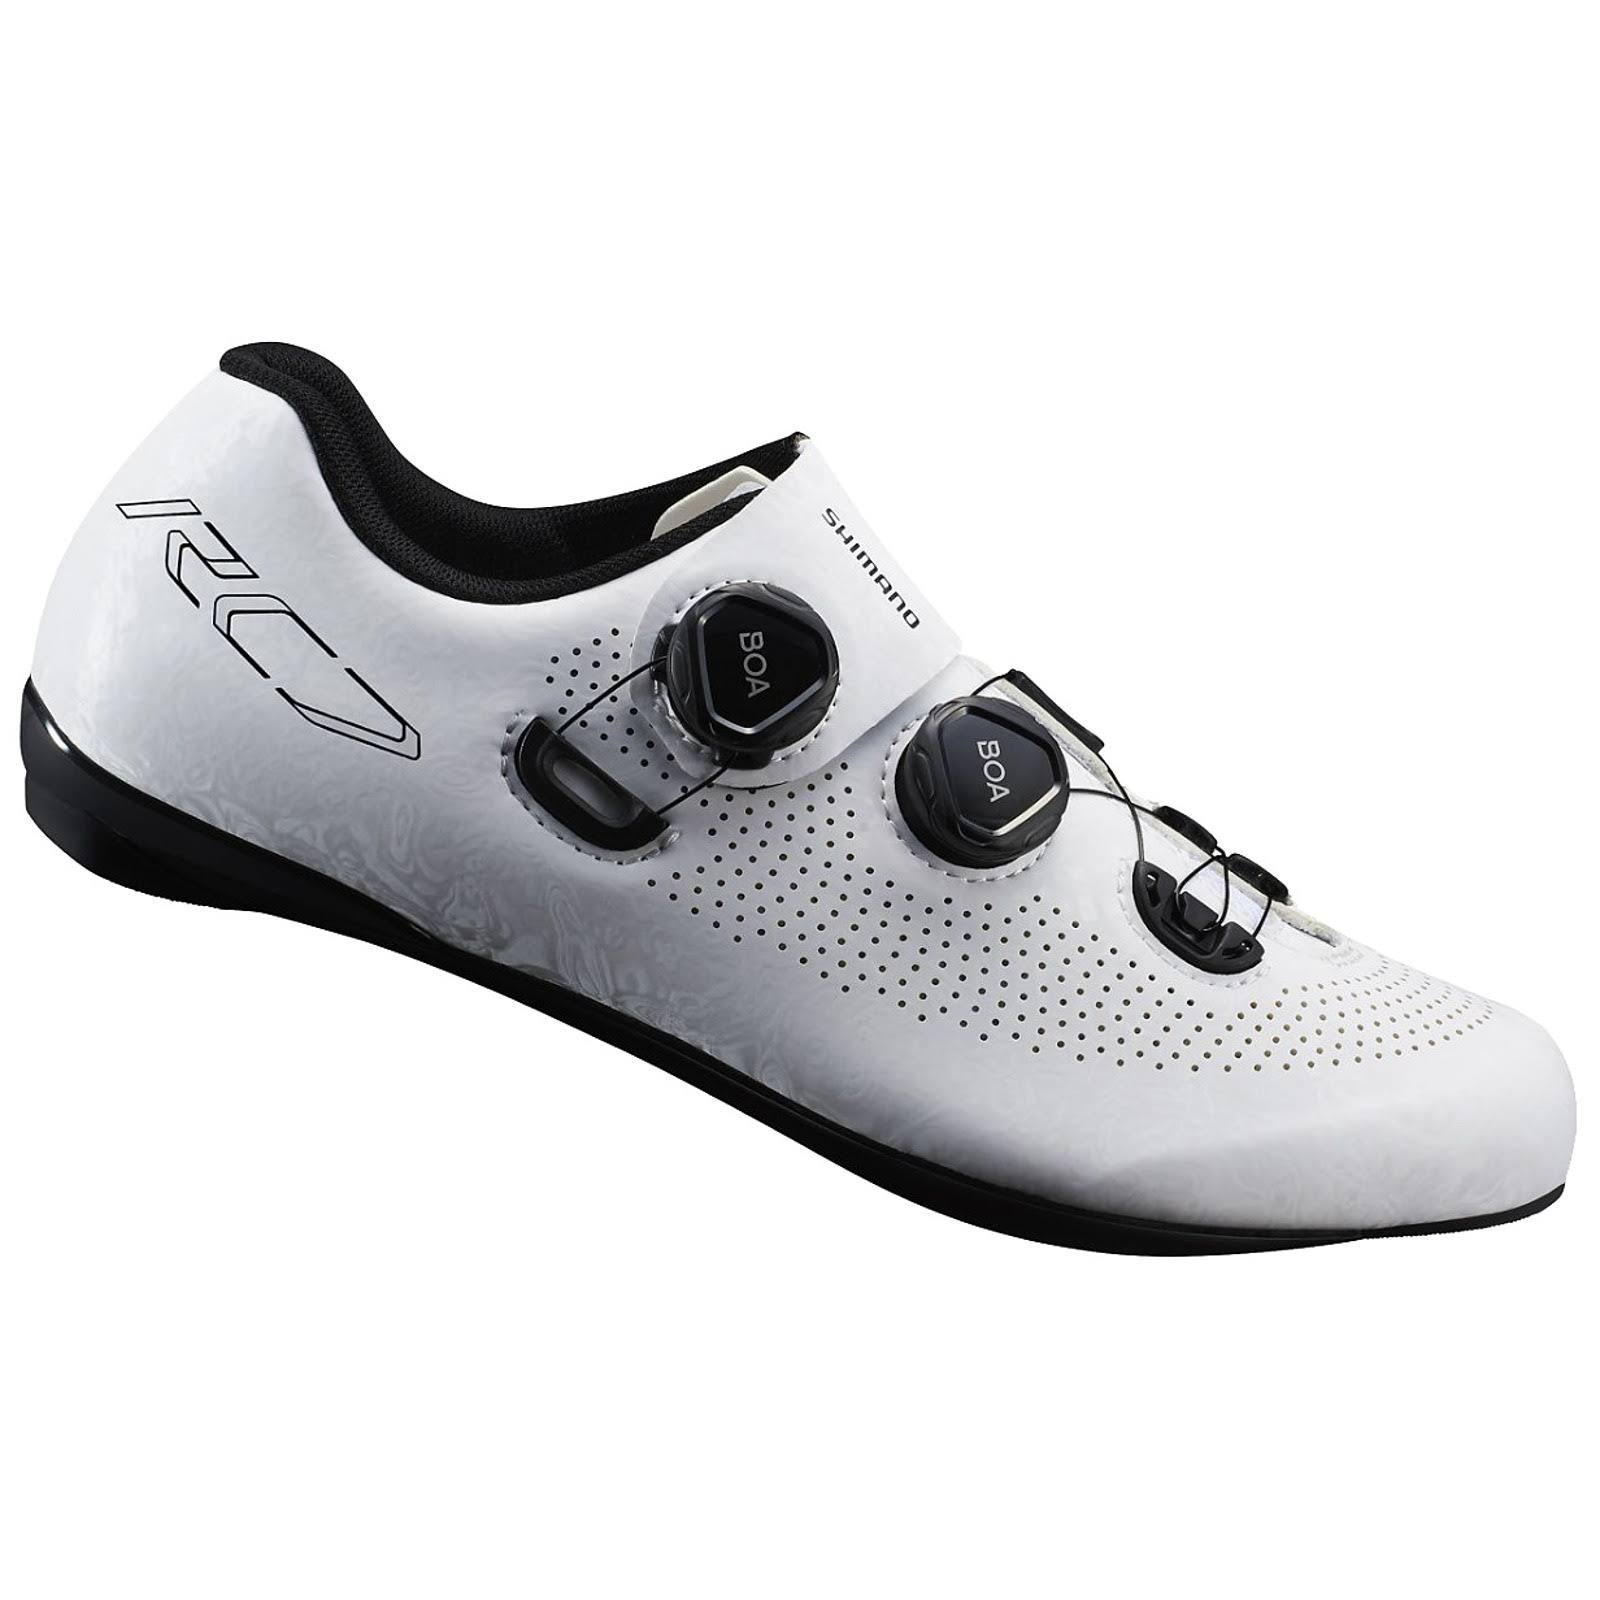 Shimano RC7 Carbon Cycling Shoes - White, EU43